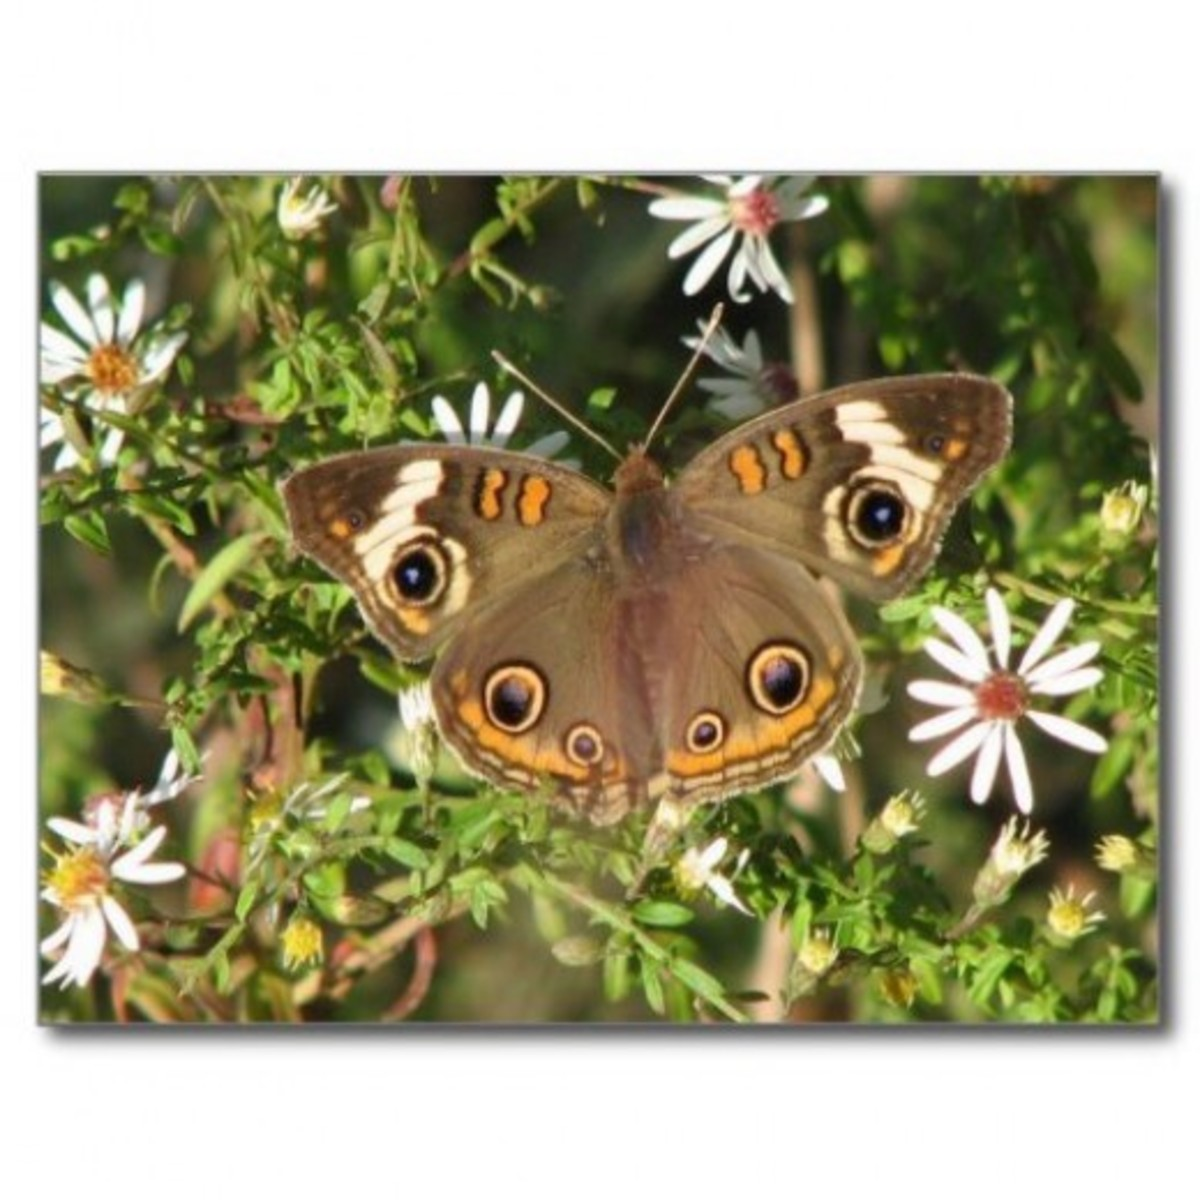 A buckeye butterfly drinks nectar from fall asters.